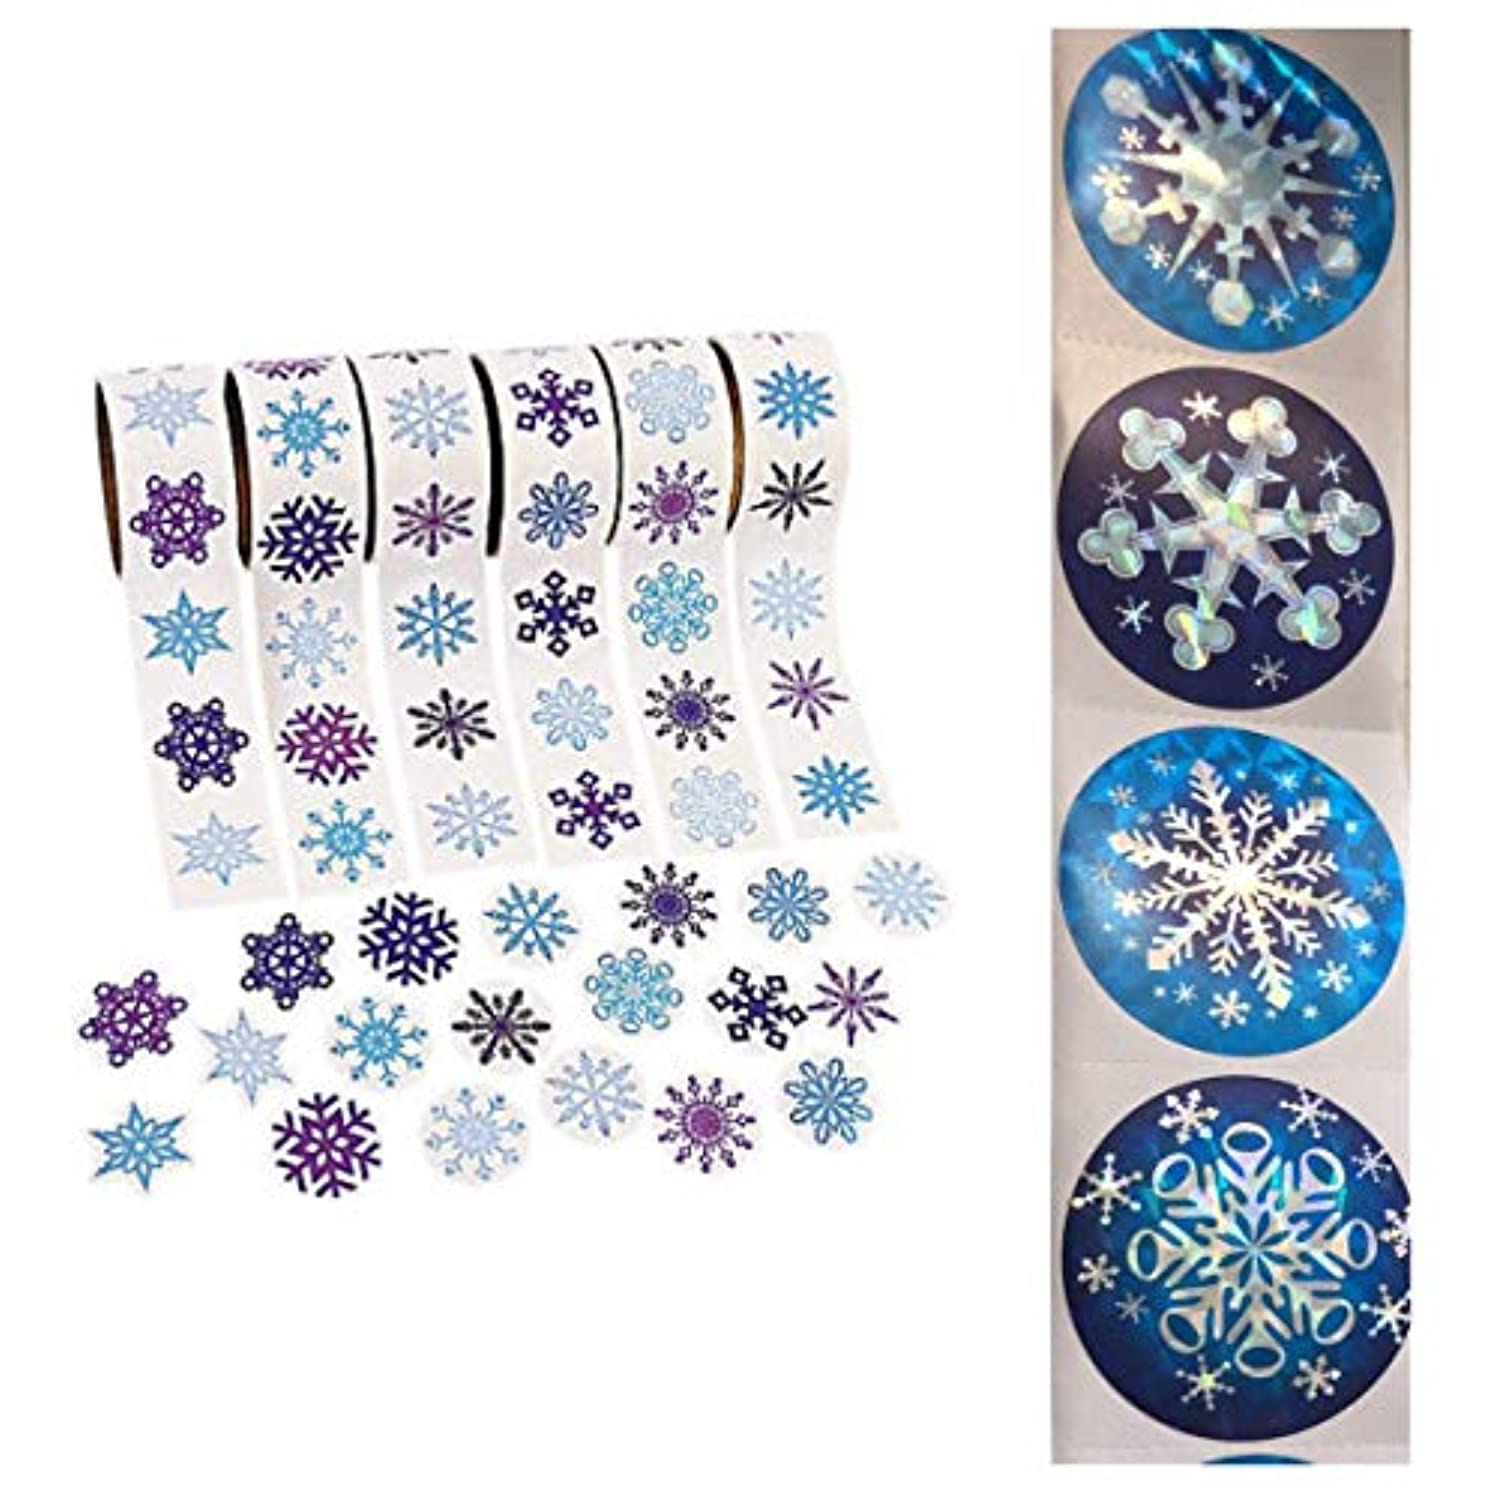 Huge Mega Lot of 700 SNOWFLAKE Stickers (7 Rolls of 100 ea) WINTER Holiday CRAFTS Scrapbooking - CHRISTMAS Decor FROZEN Party